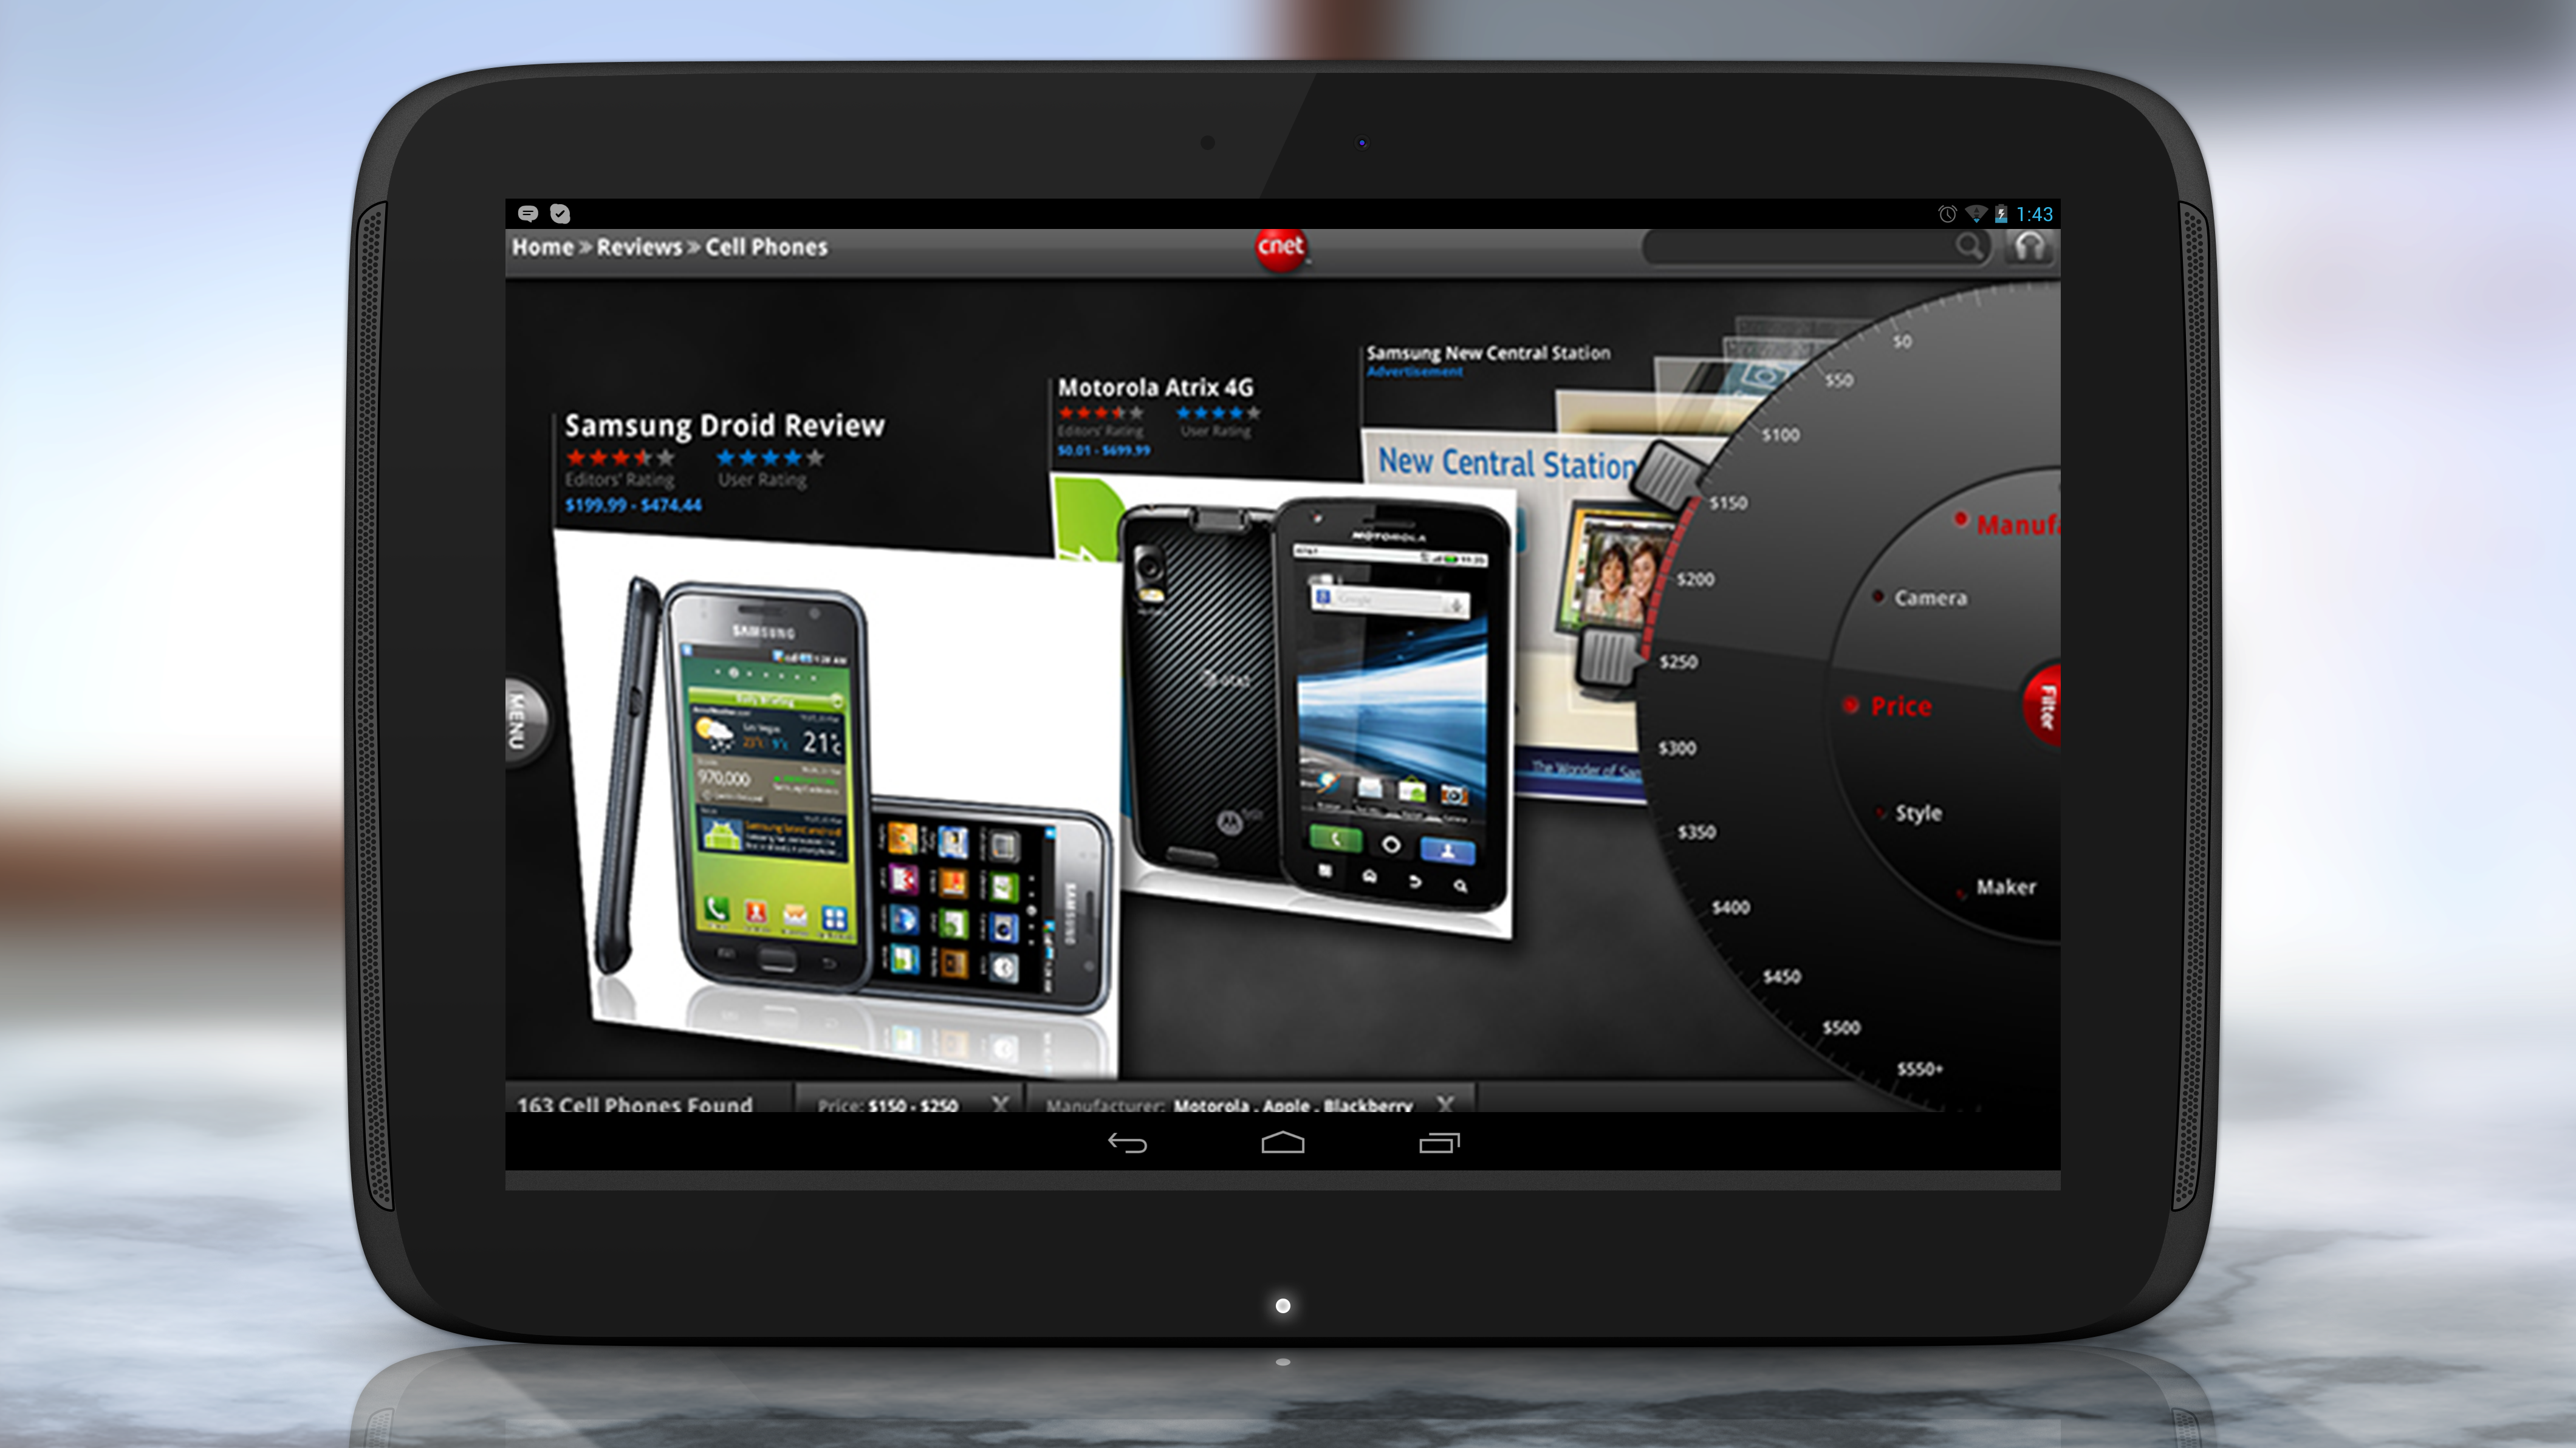 Matthew mclemore award winning uiux designer cnet android tablet app ccuart Image collections